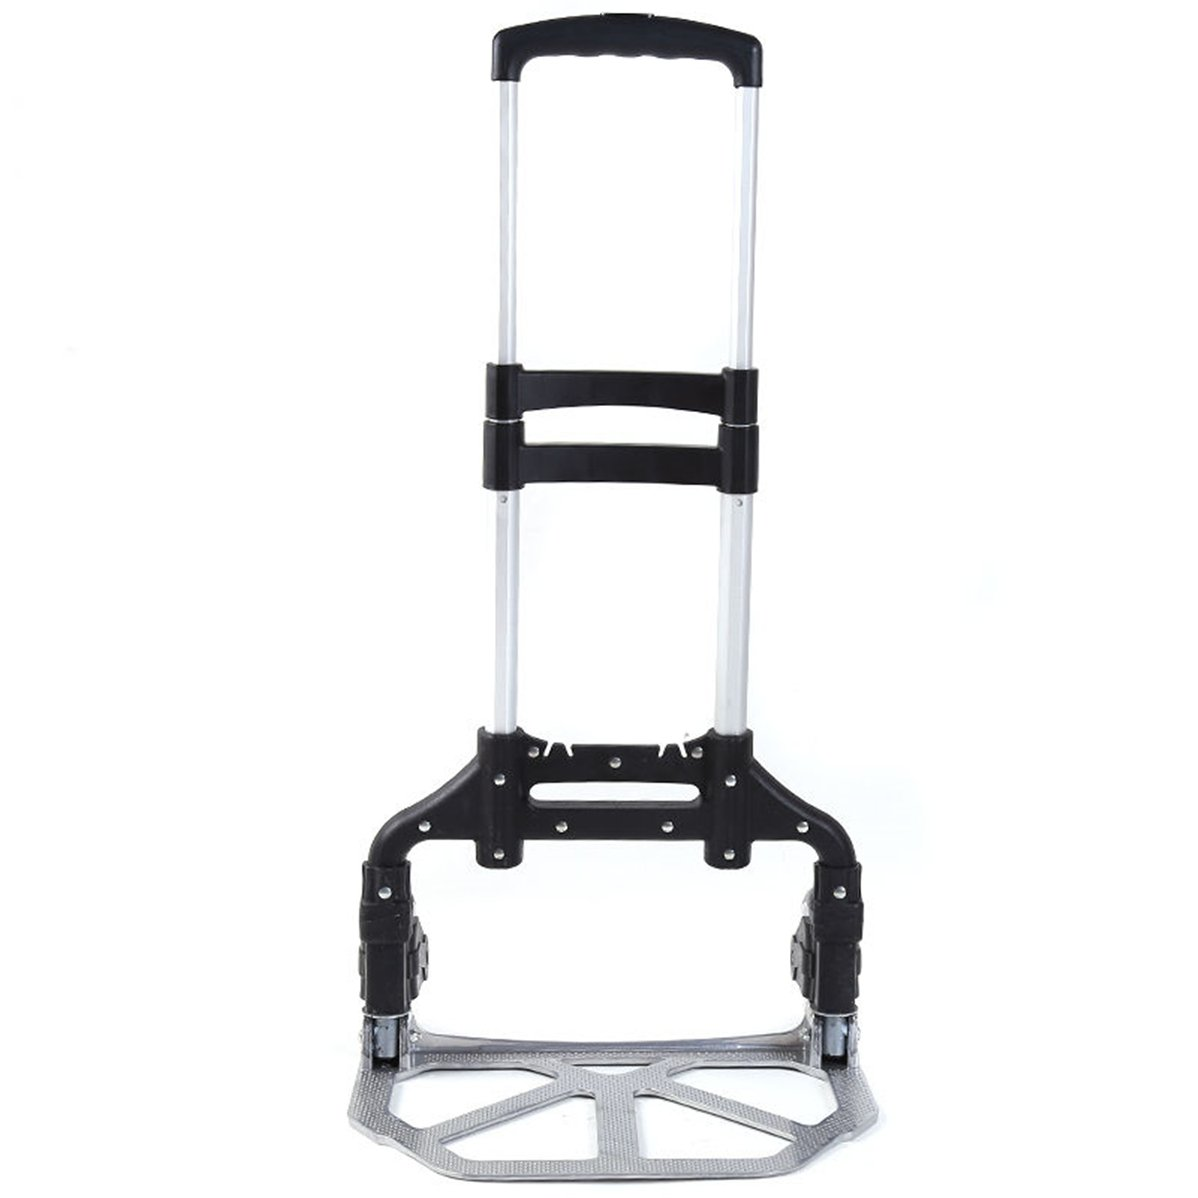 UNKE Aluminium Luggage Cart Folding Dolly Push Truck Collapsible Hand Trolley 170 lbs